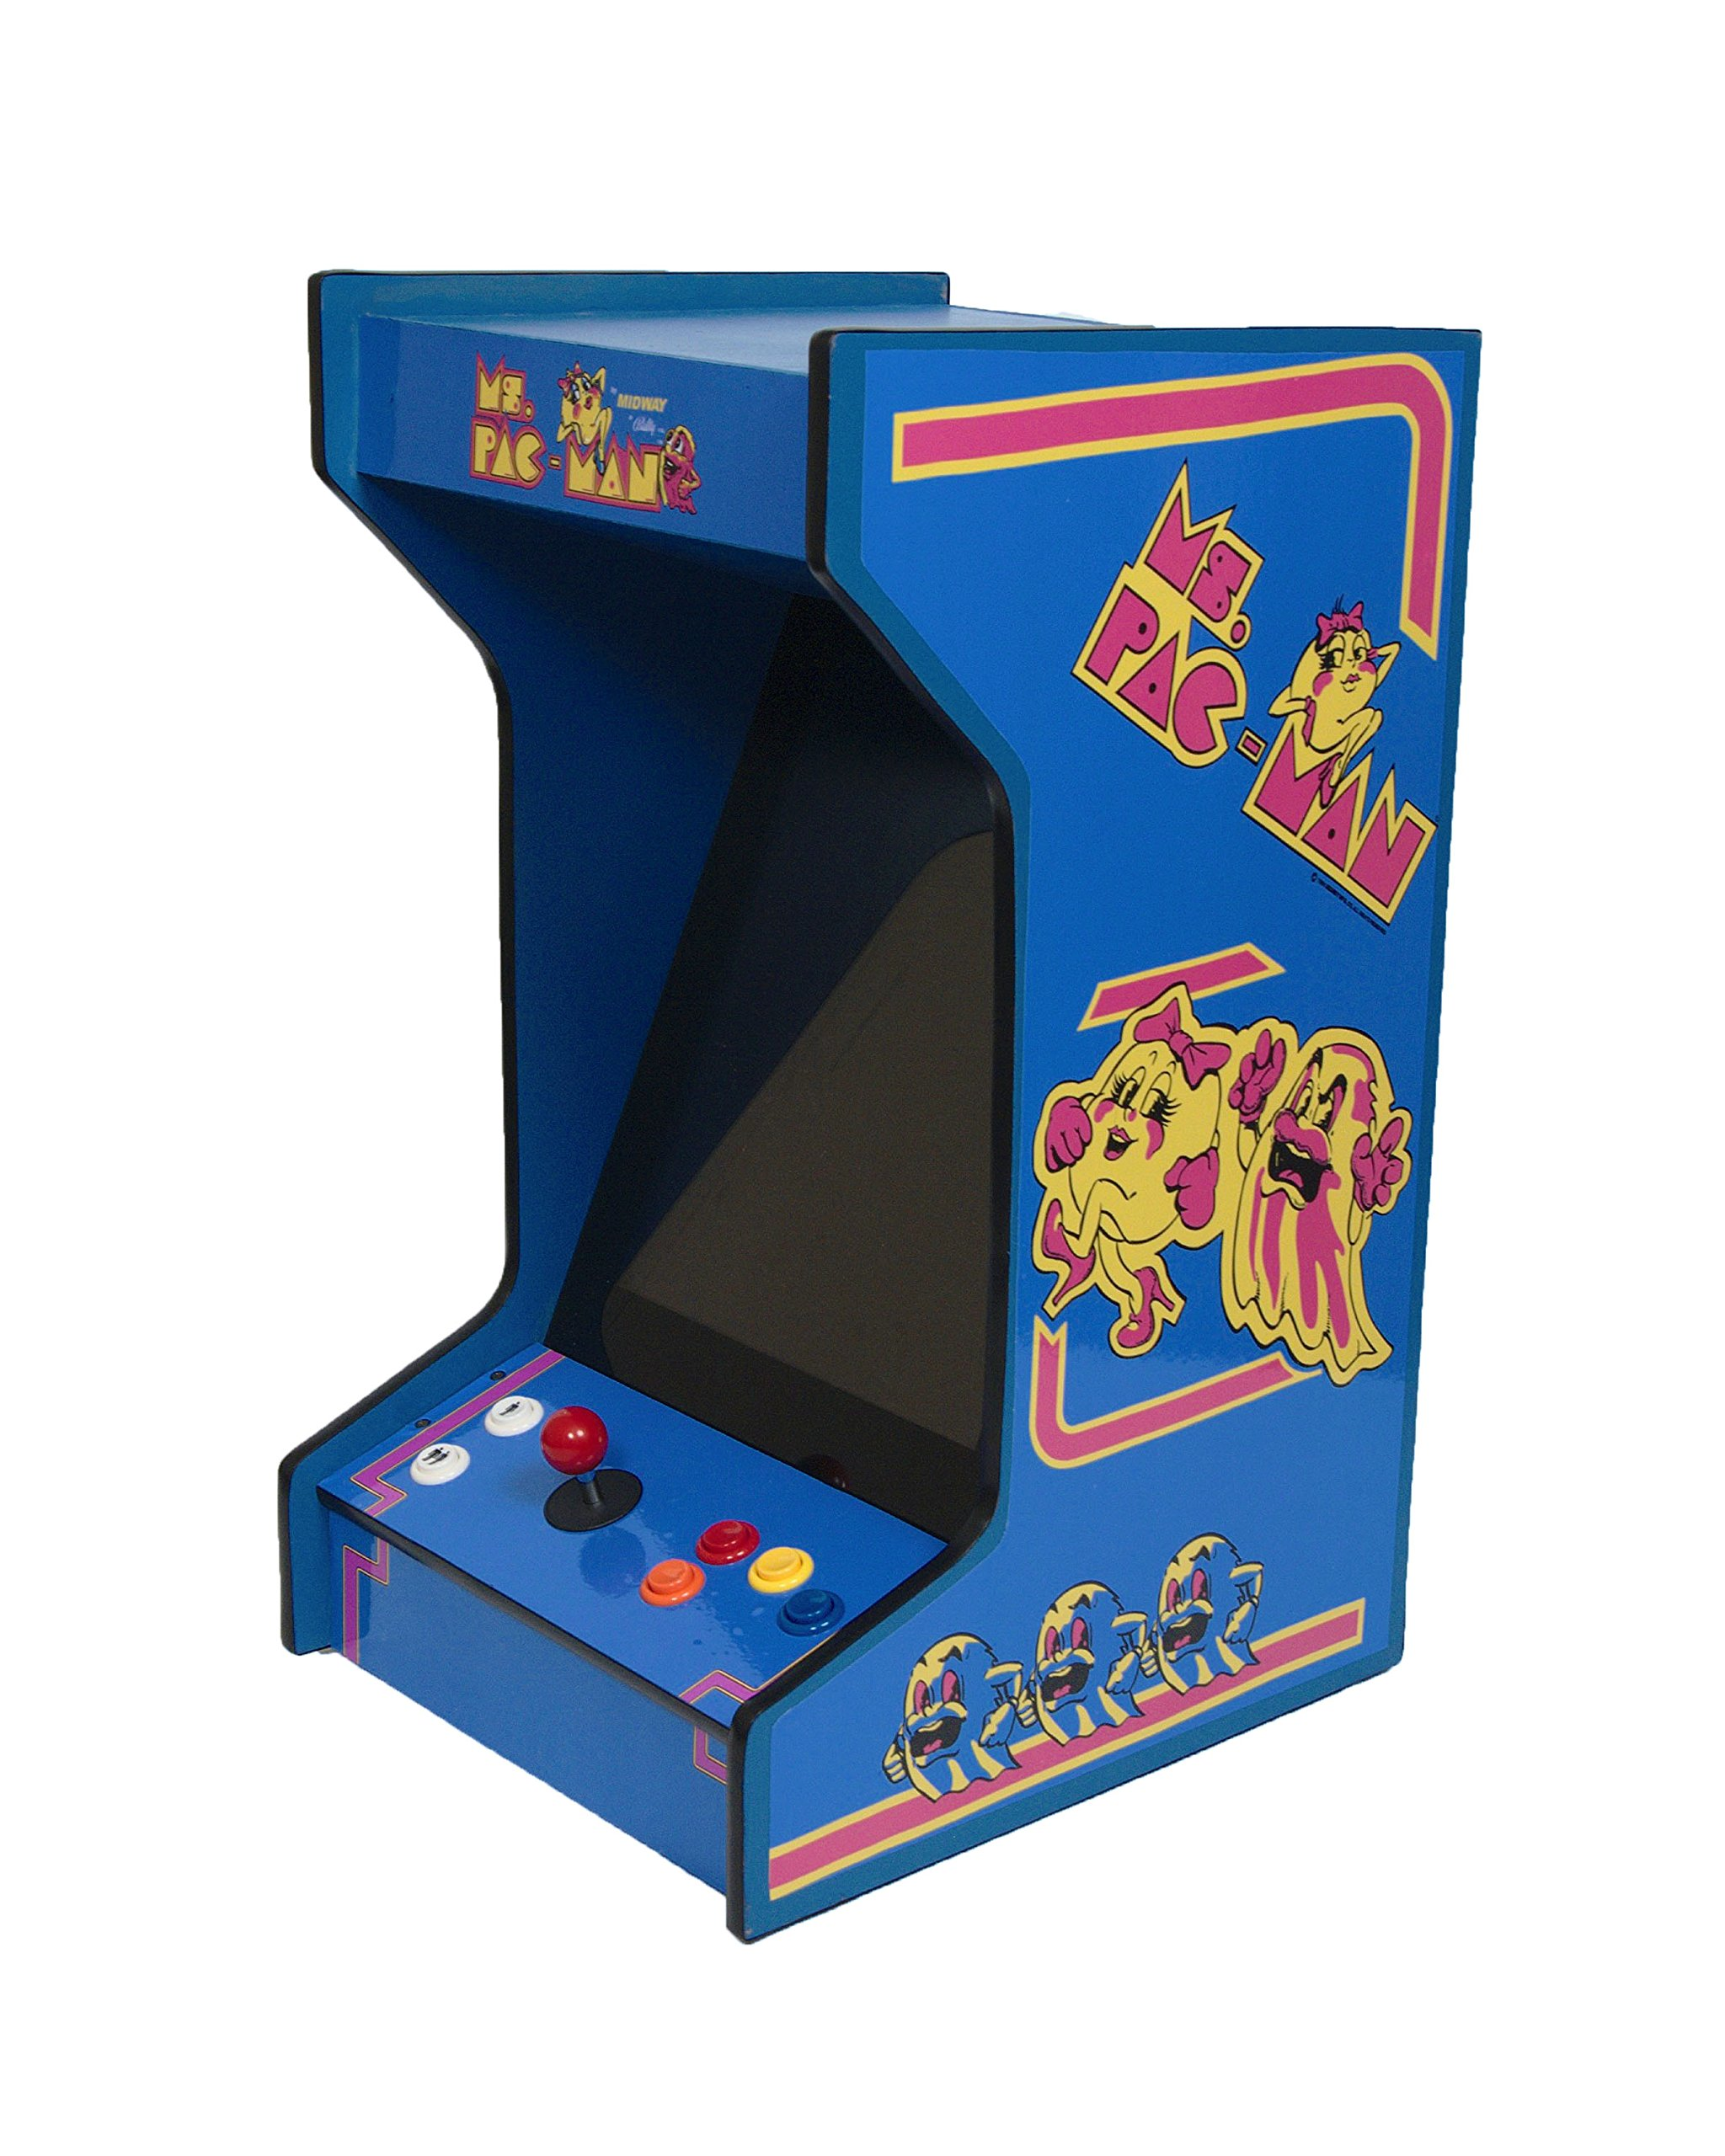 Tabletop/Bartop Arcade Machine With 412 Games